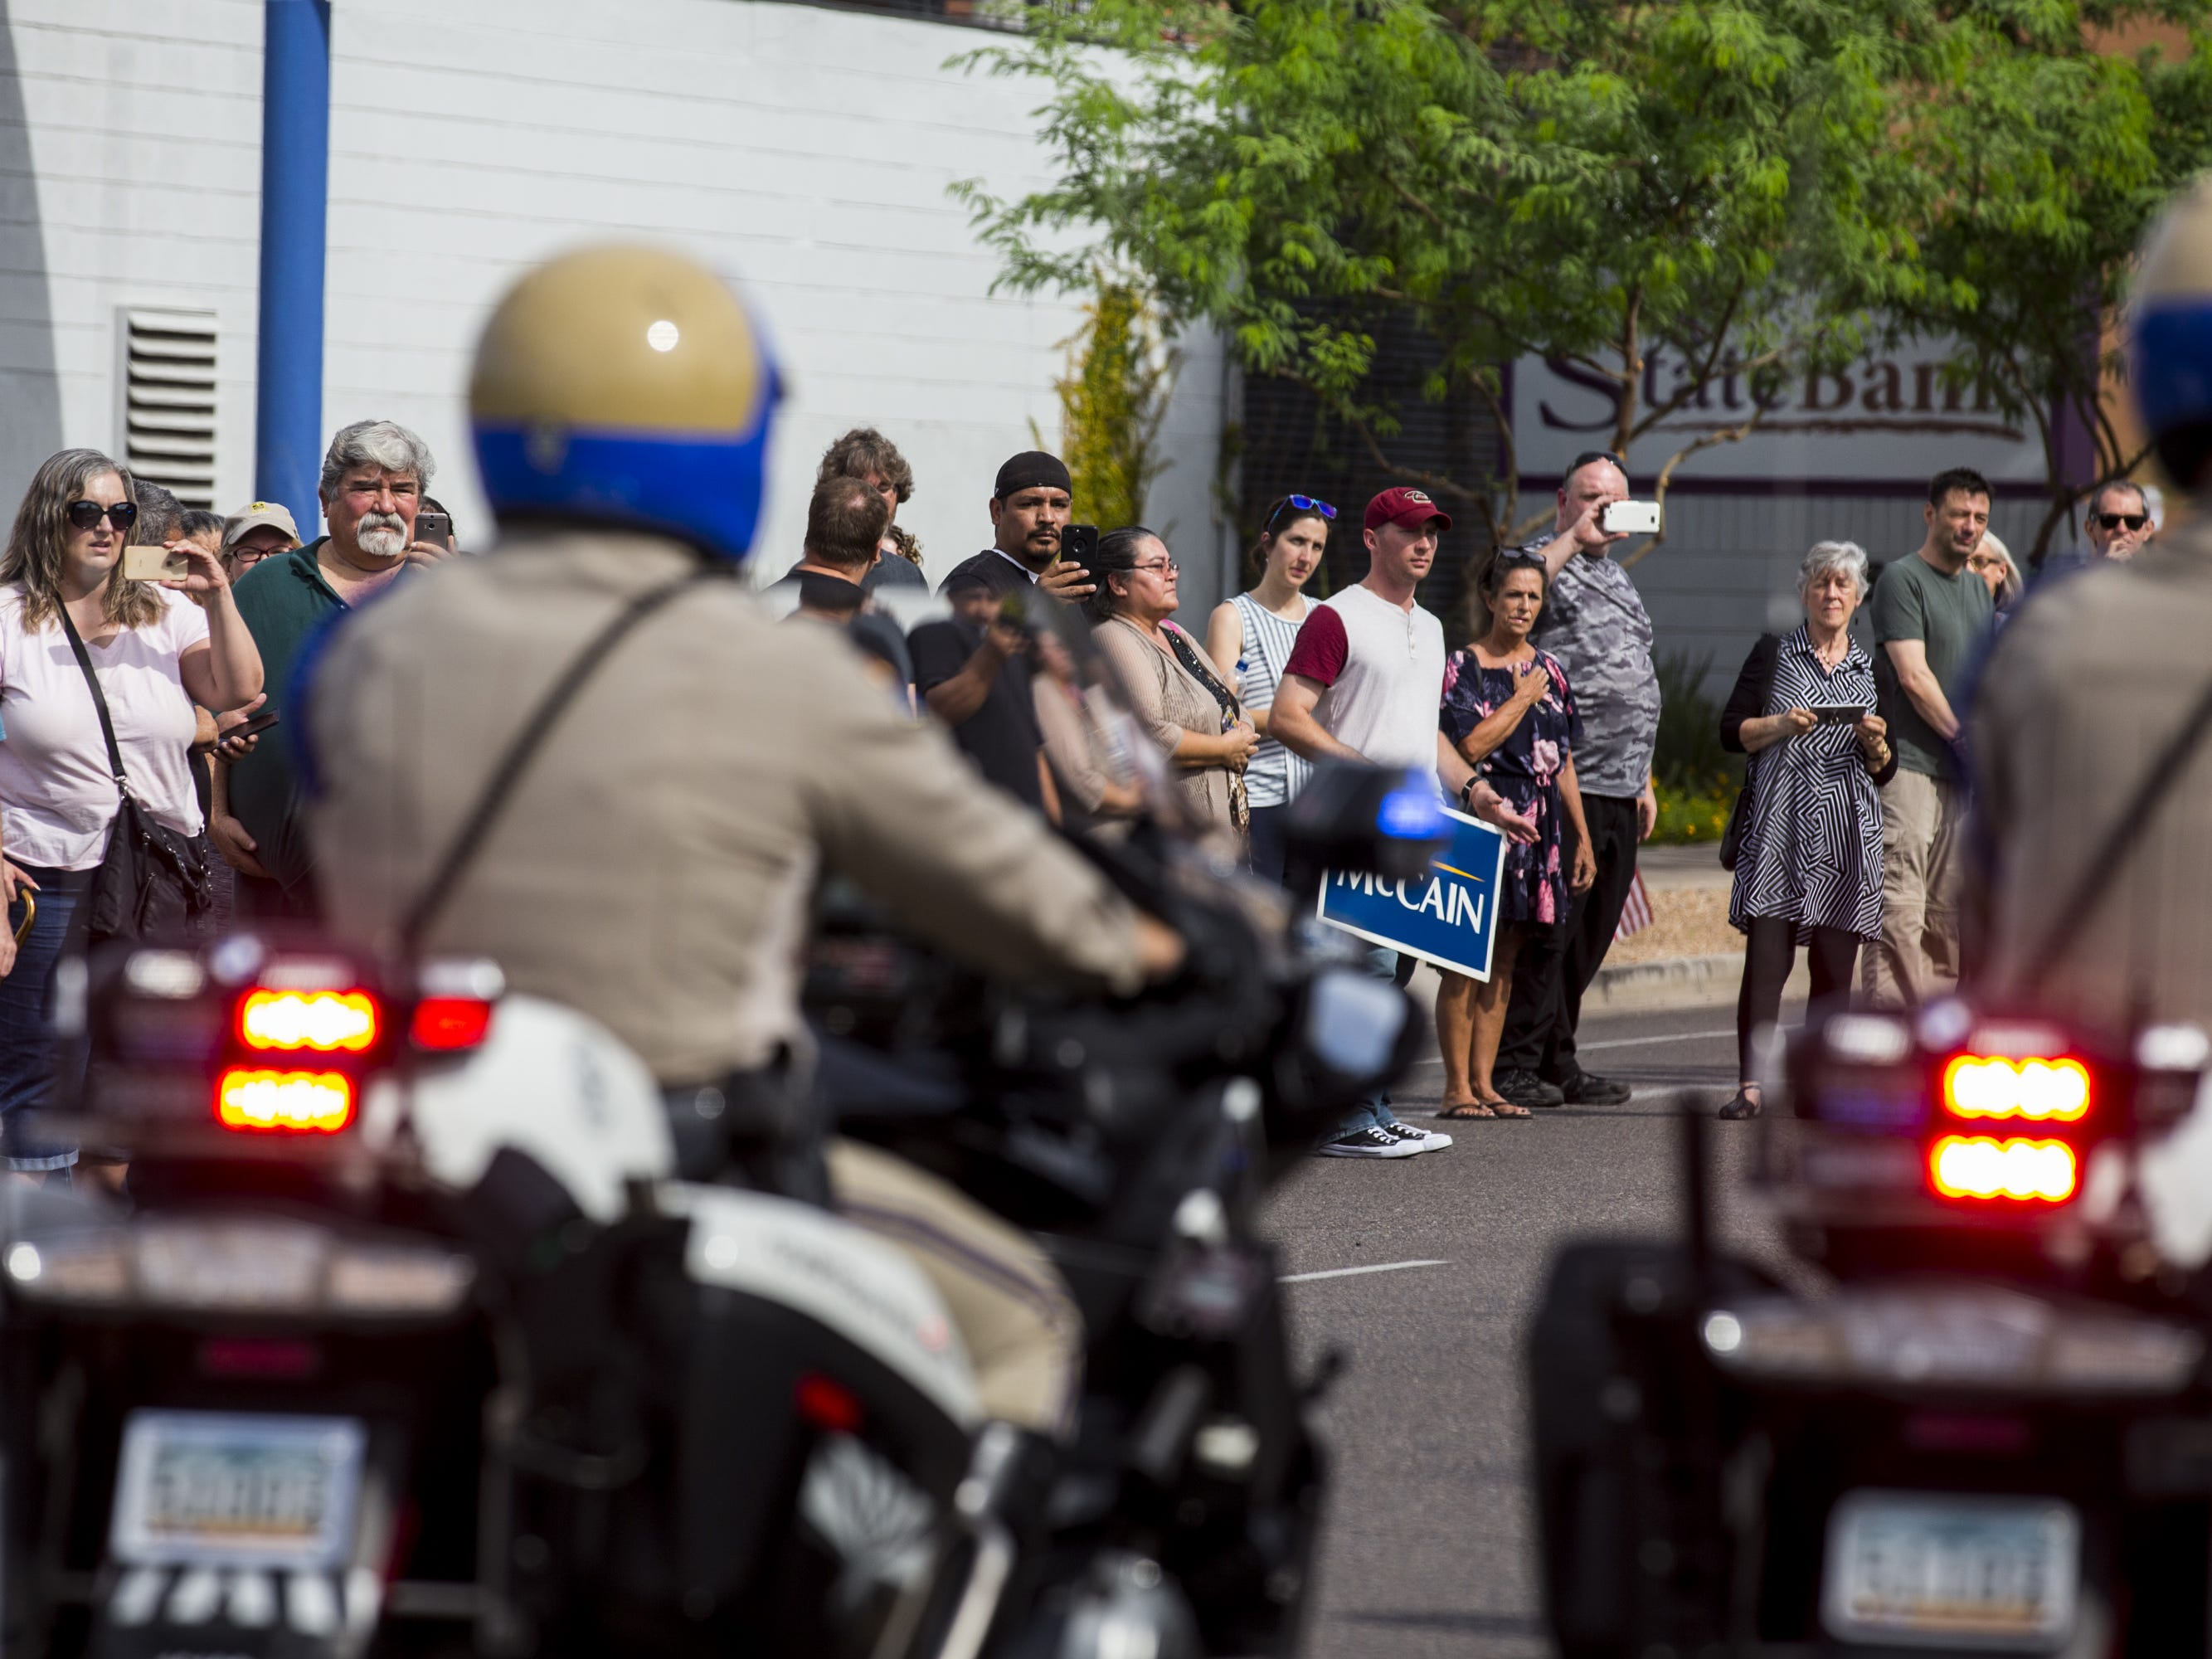 People watch as the motorcade escorting Sen. John McCain's body drives north on Camelback Road on the way to his Arizona Memorial Service at North Phoenix Baptist Church, Aug. 30, 2018, in Phoenix.